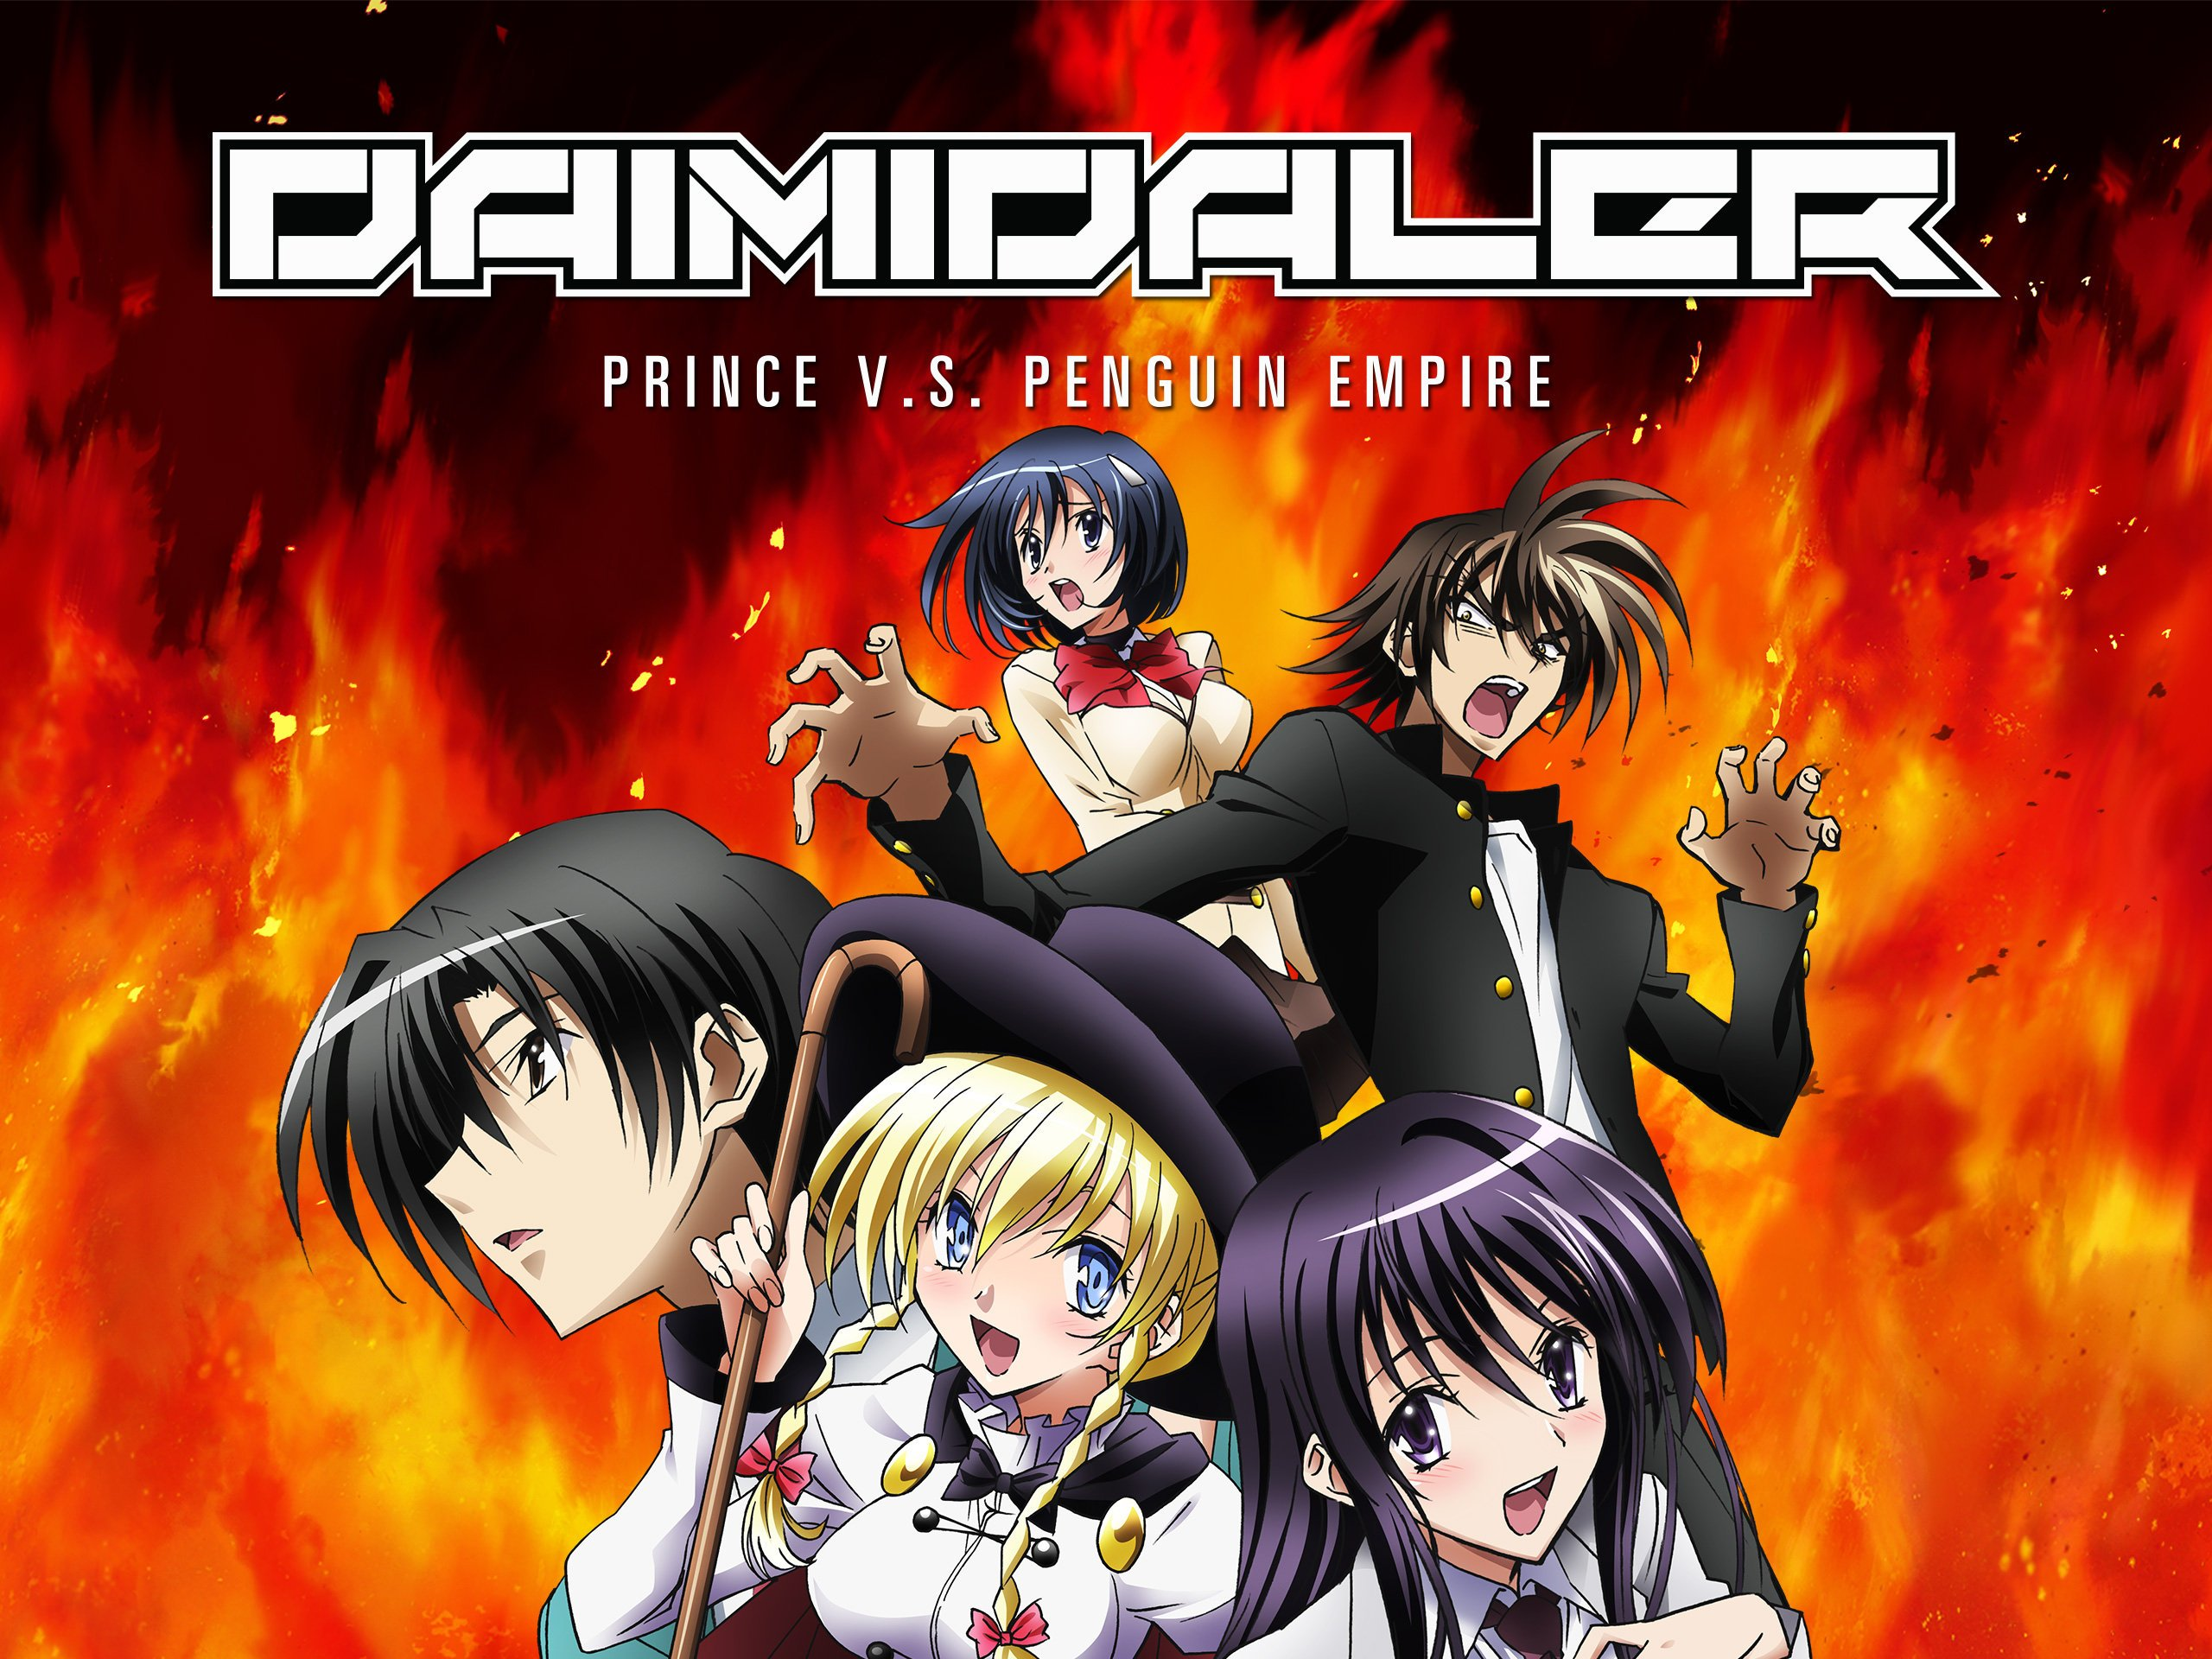 Watch Daimidaler: Prince V.S. Penguin Empire (Original Japanese Version)  Season 1 (English Subtitled) | Prime Video